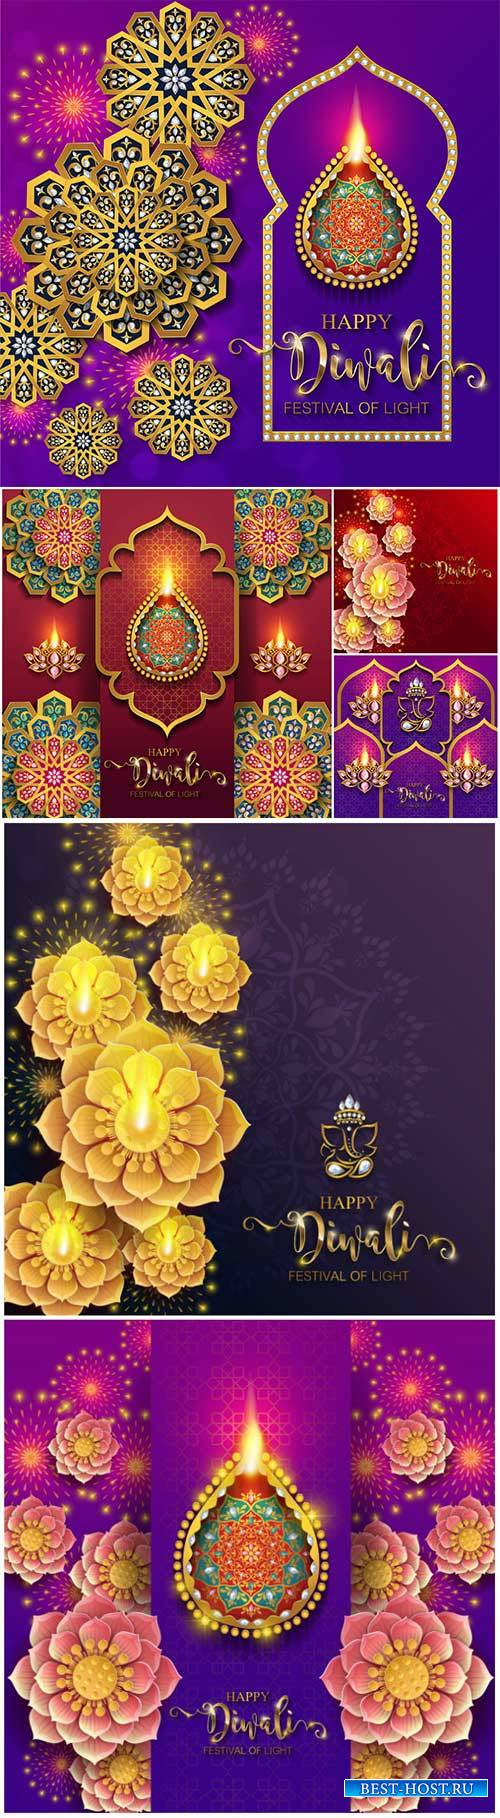 Diwali luxury vector background